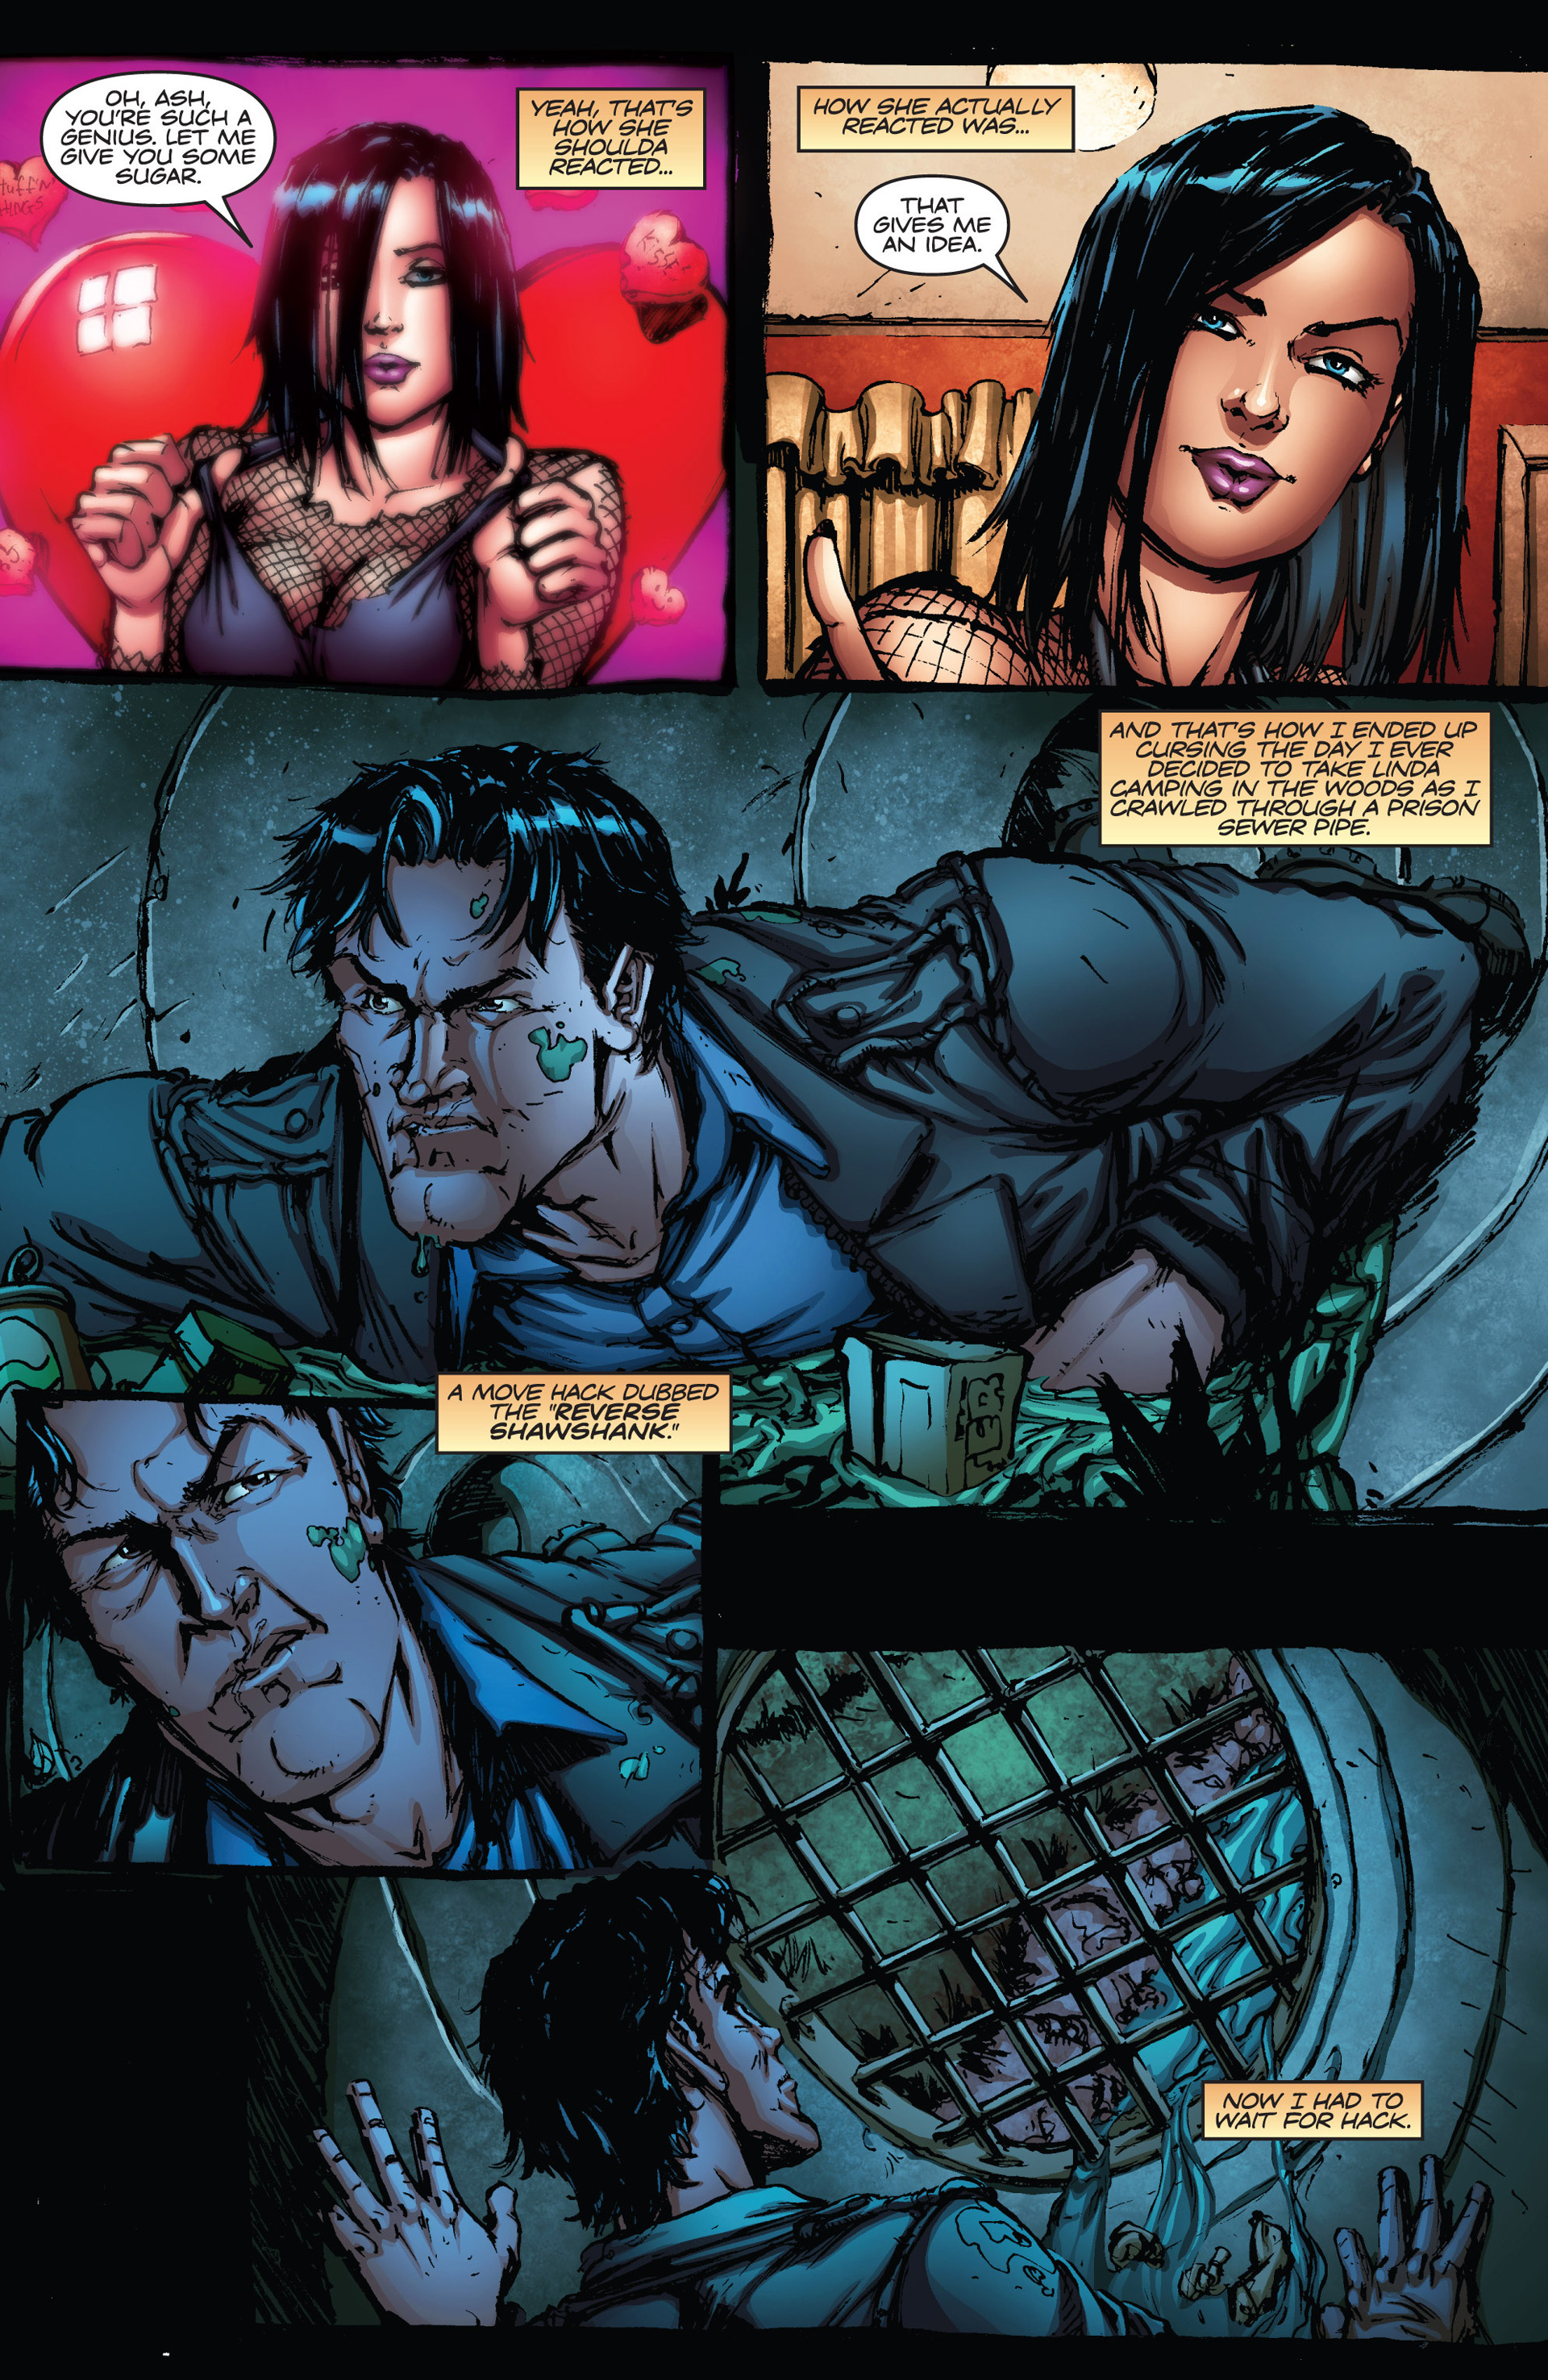 Read online Army of Darkness vs. Hack/Slash comic -  Issue #2 - 9